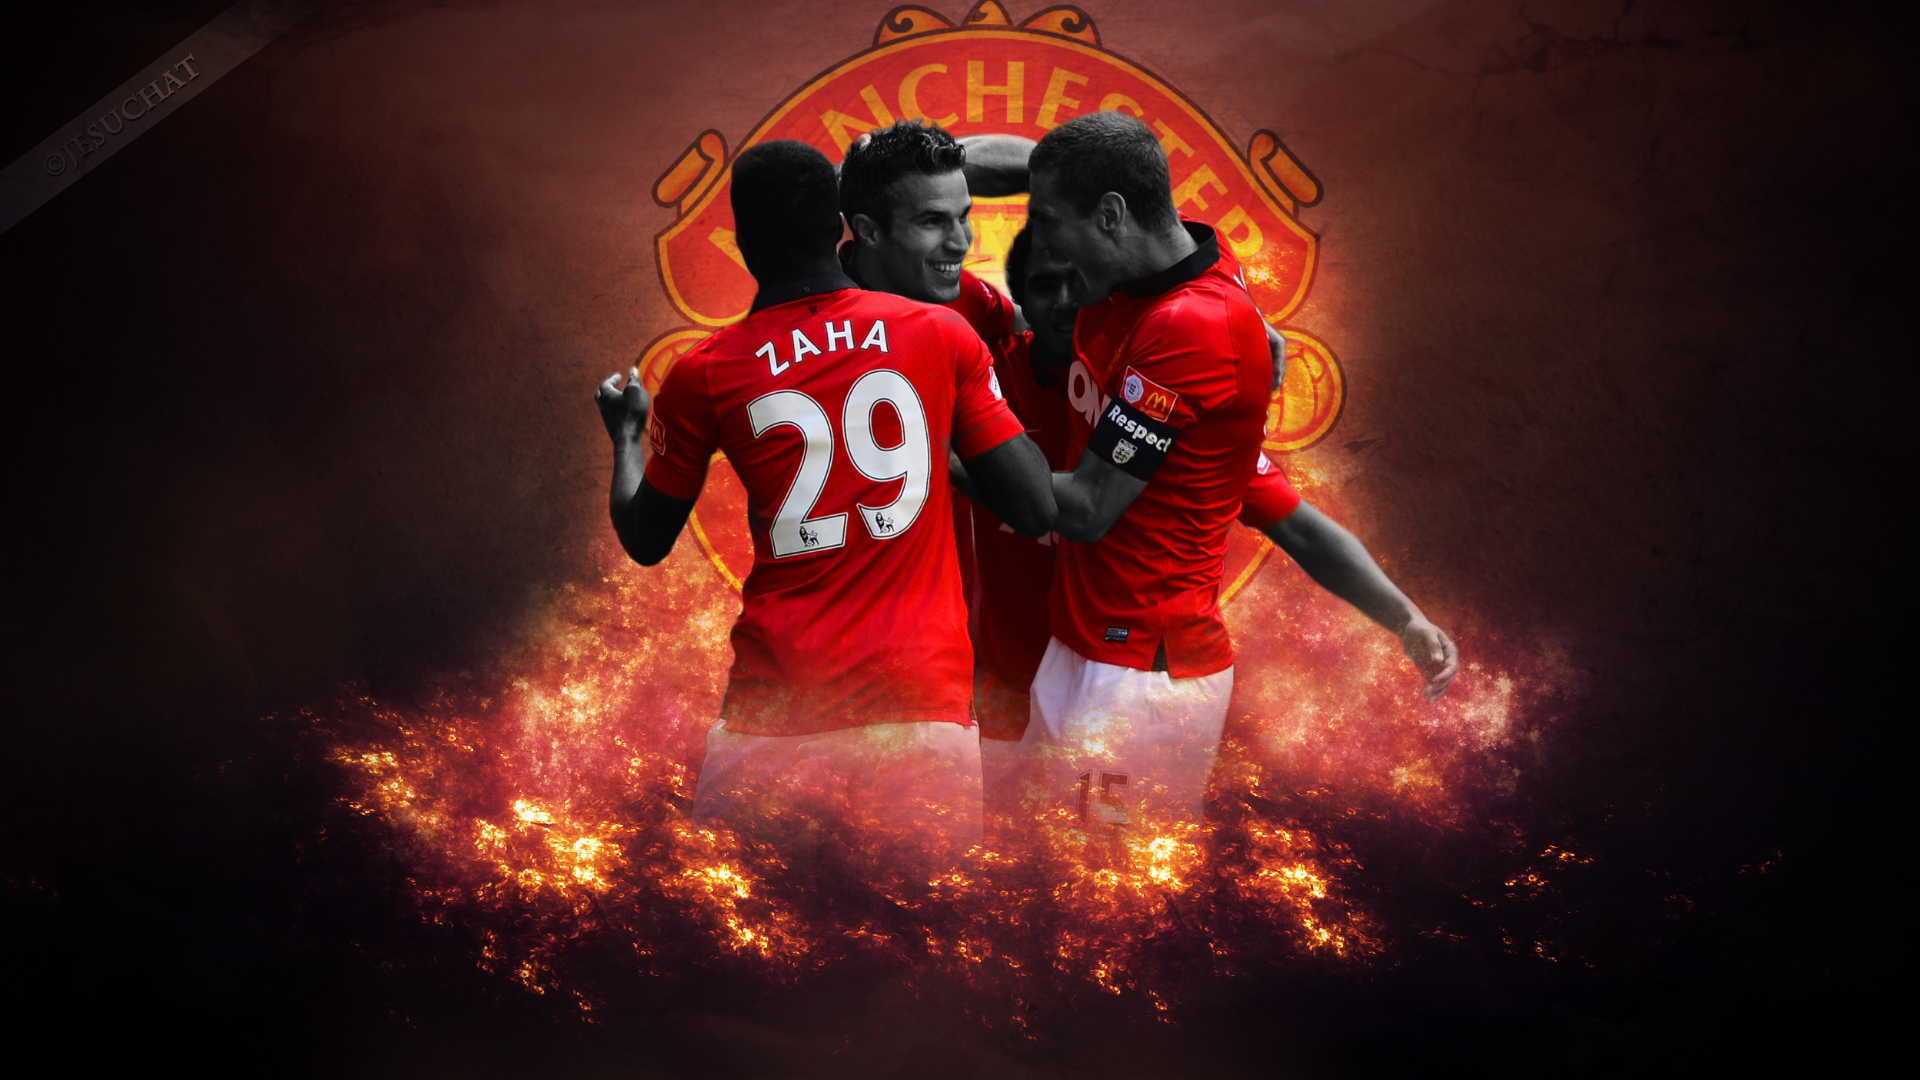 manchester united wallpapers 1 - photo #20